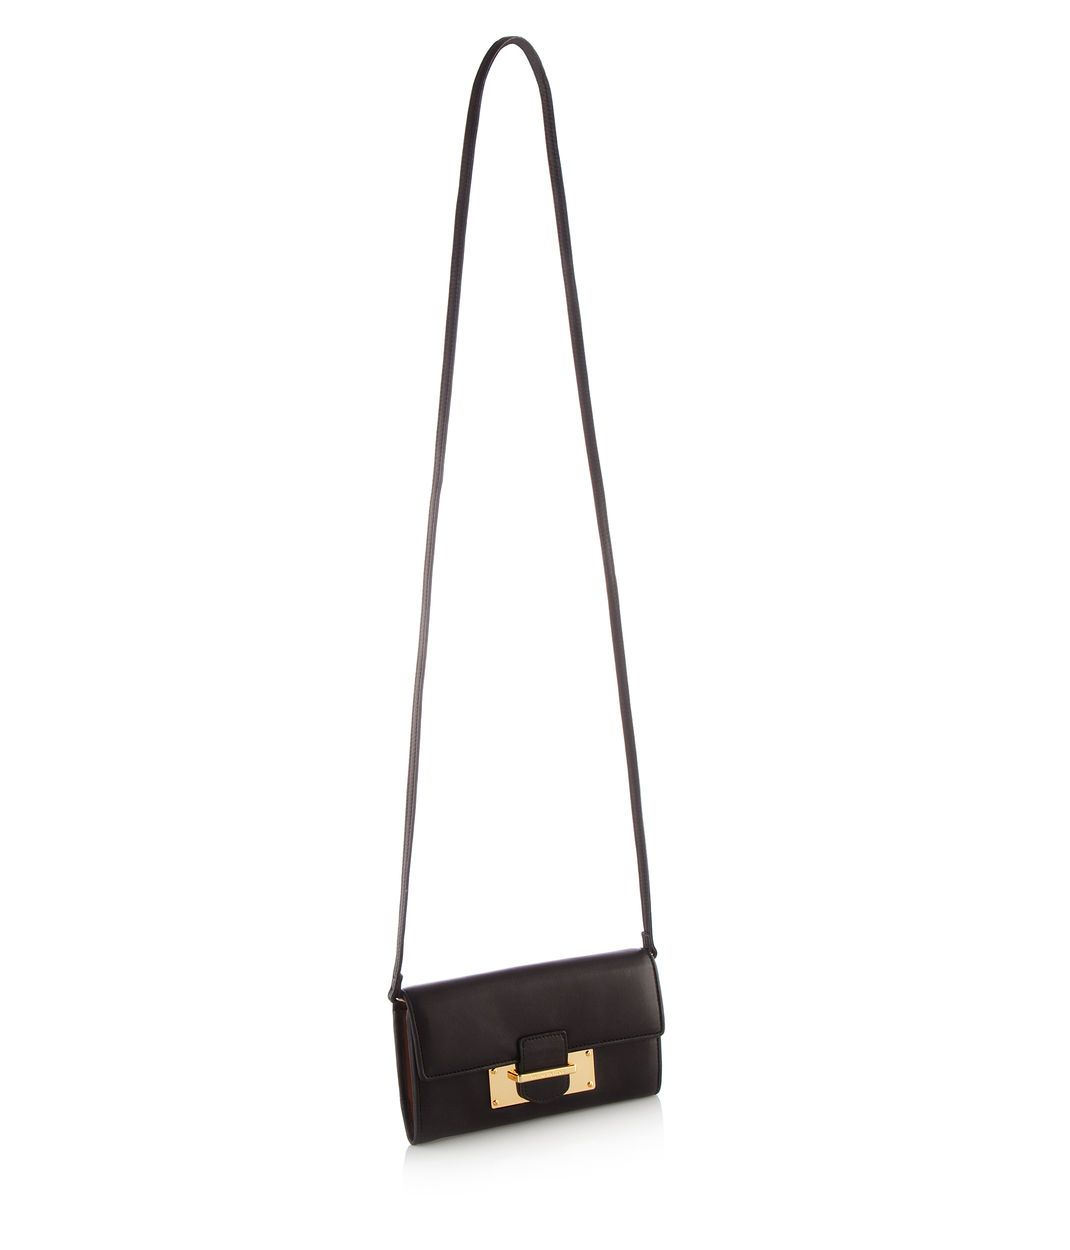 <p>The Whitney Continental Wallet is a fashionable and functional essential that belongs in every Bendel Girl's designer handbag. Crafted with soft cowhide leather and featuring a removable crossbody strap so you can carry it in a variety of ways, this must-have luxury handbag accessory provides plenty of secure, convenient storage for your cash and credit cards.</p>